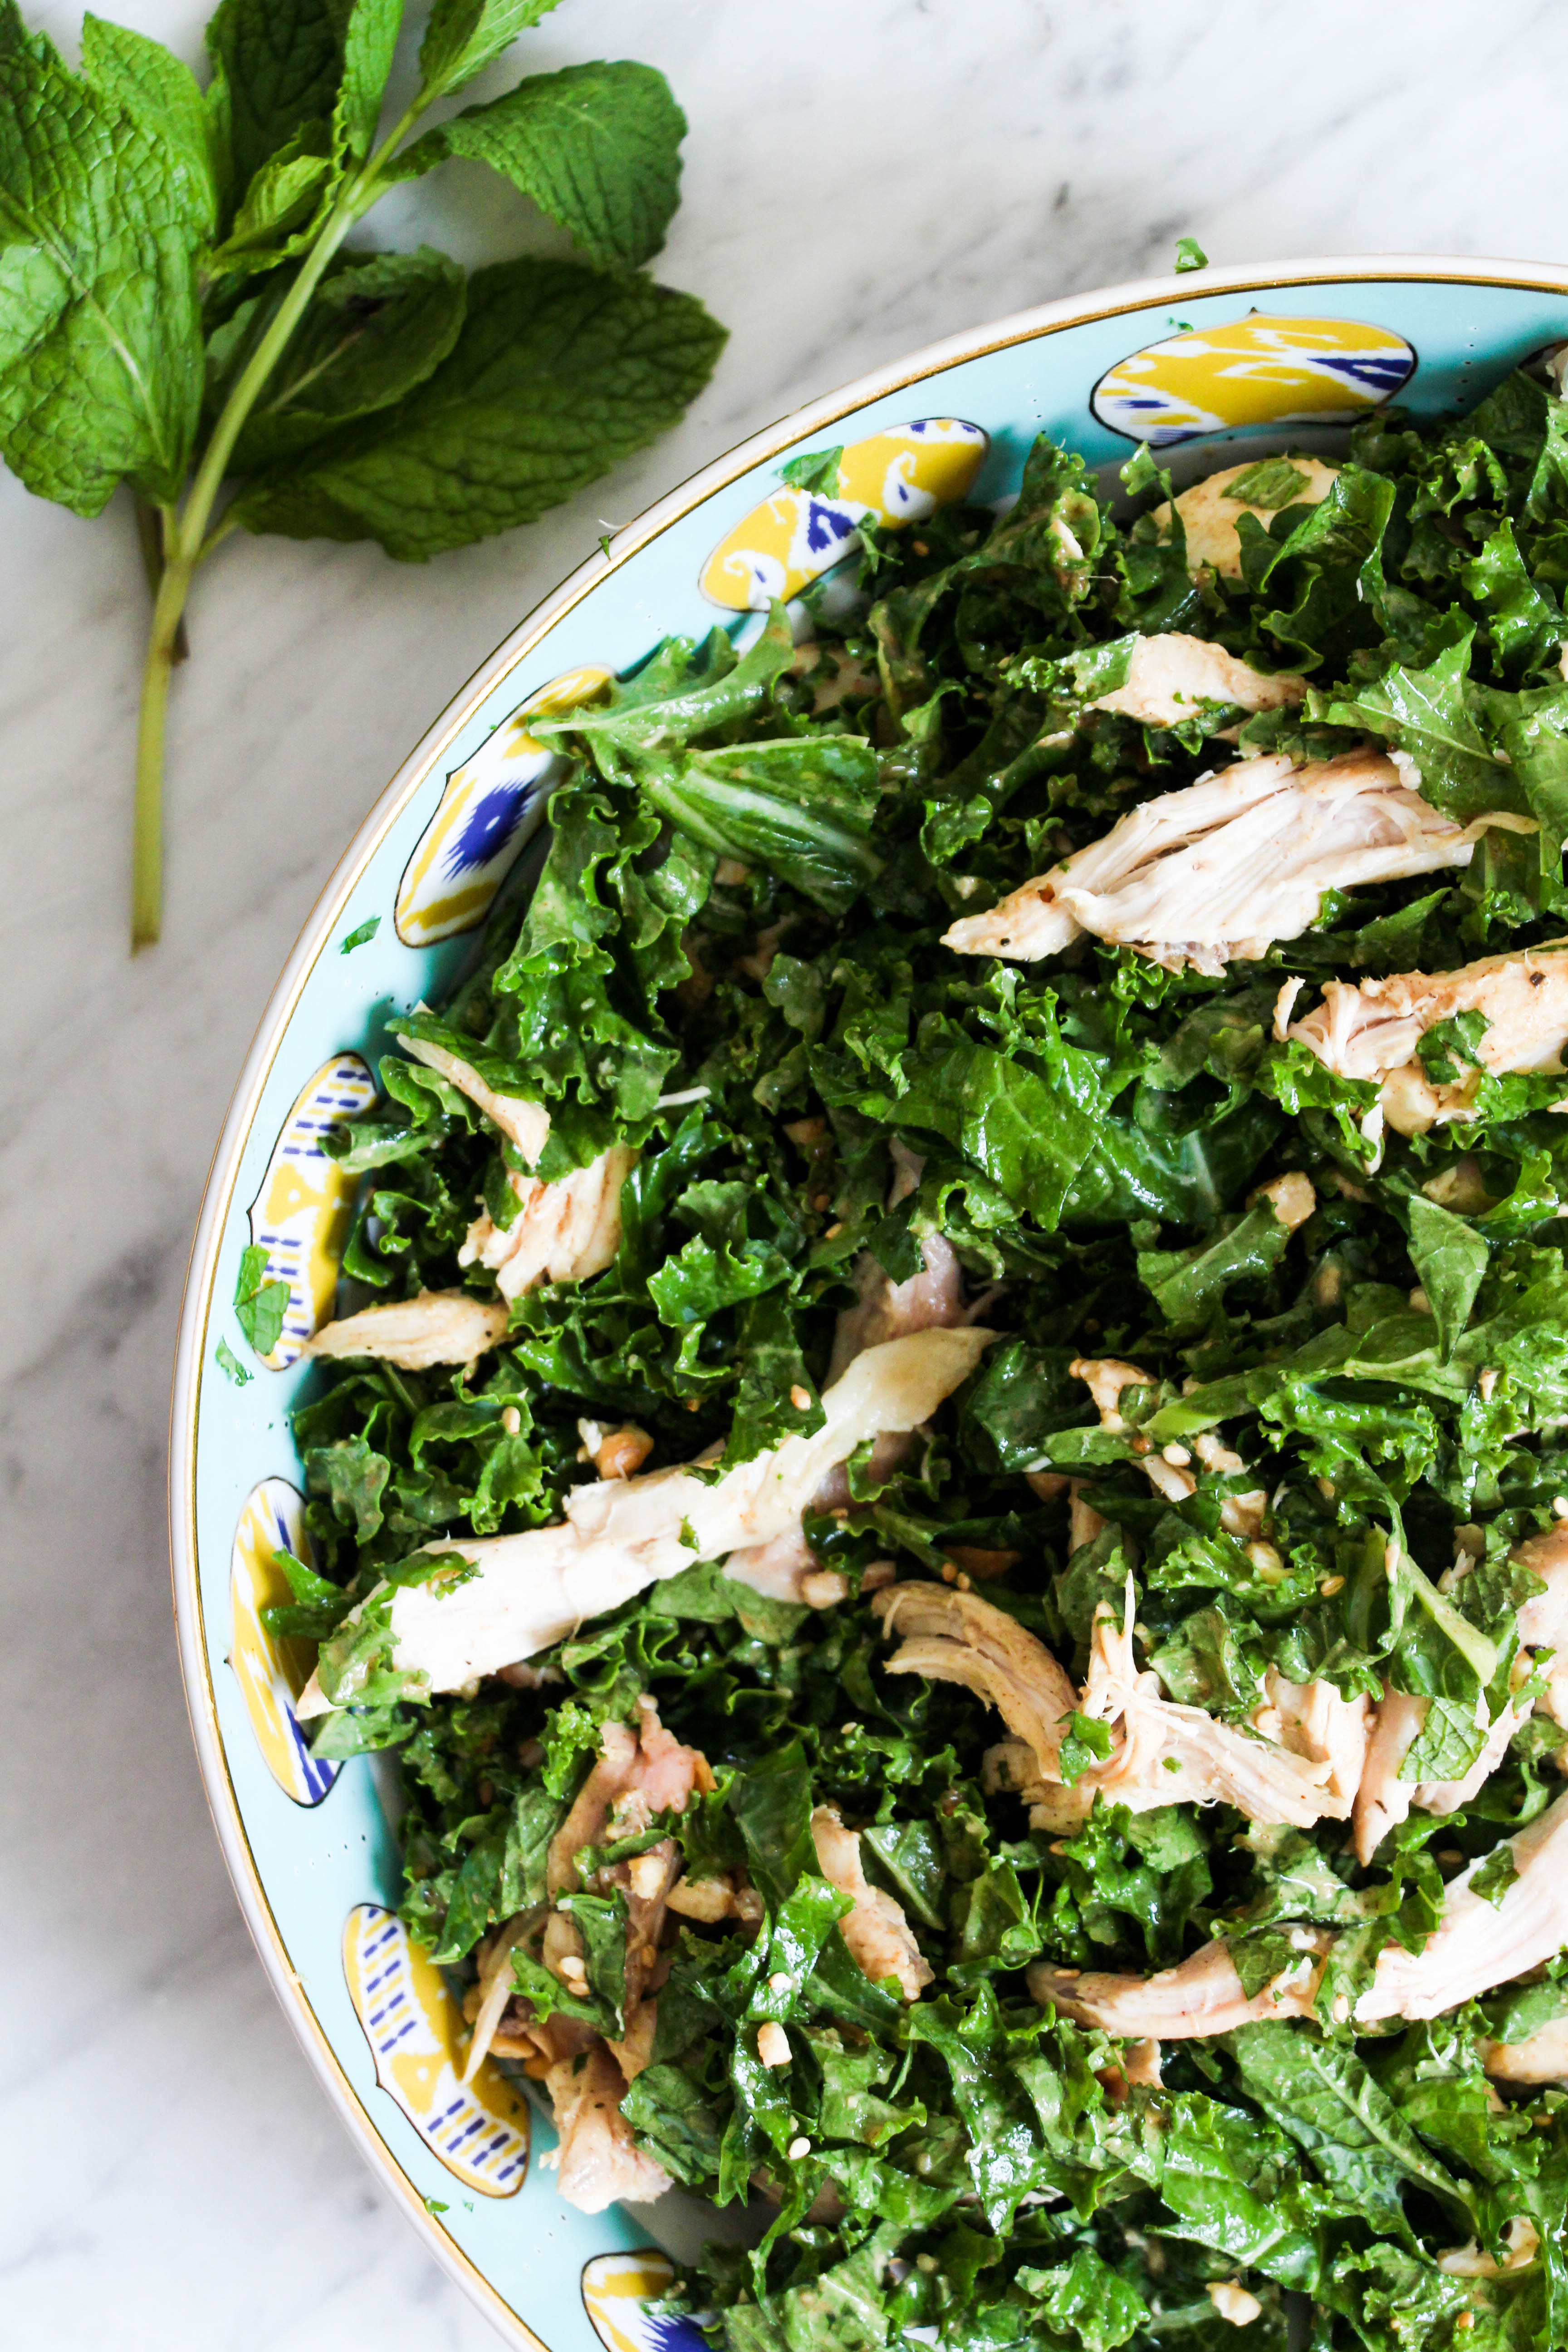 Kale and Mint Salad with 'Peanut' Vinaigrette